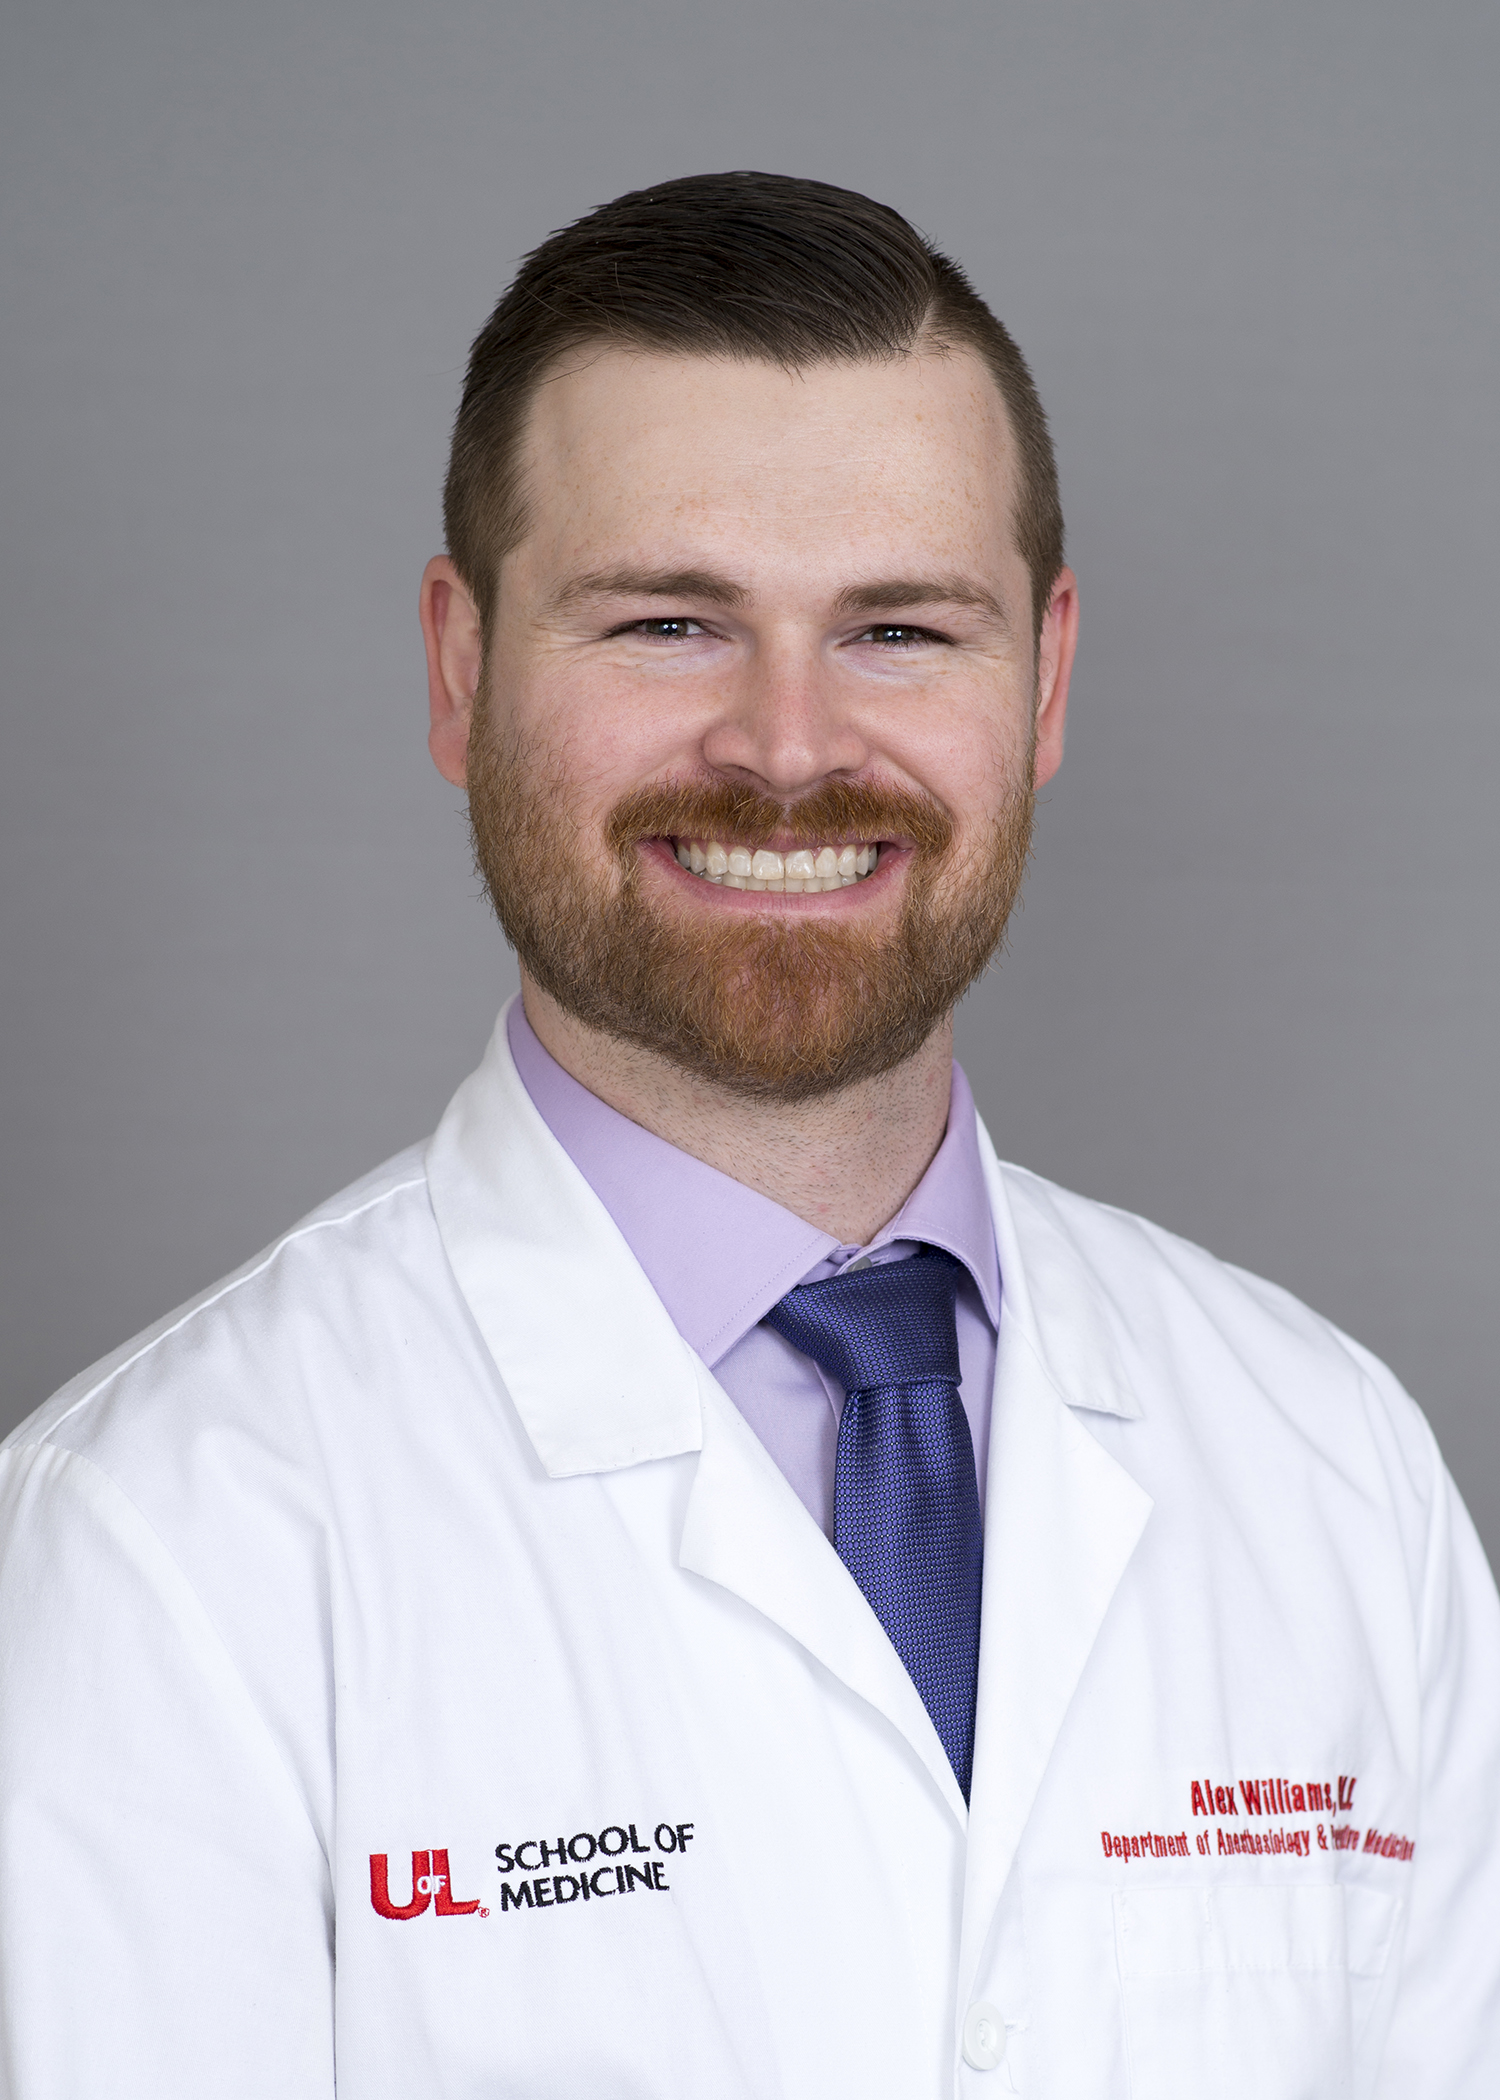 Dr. Alex Williams